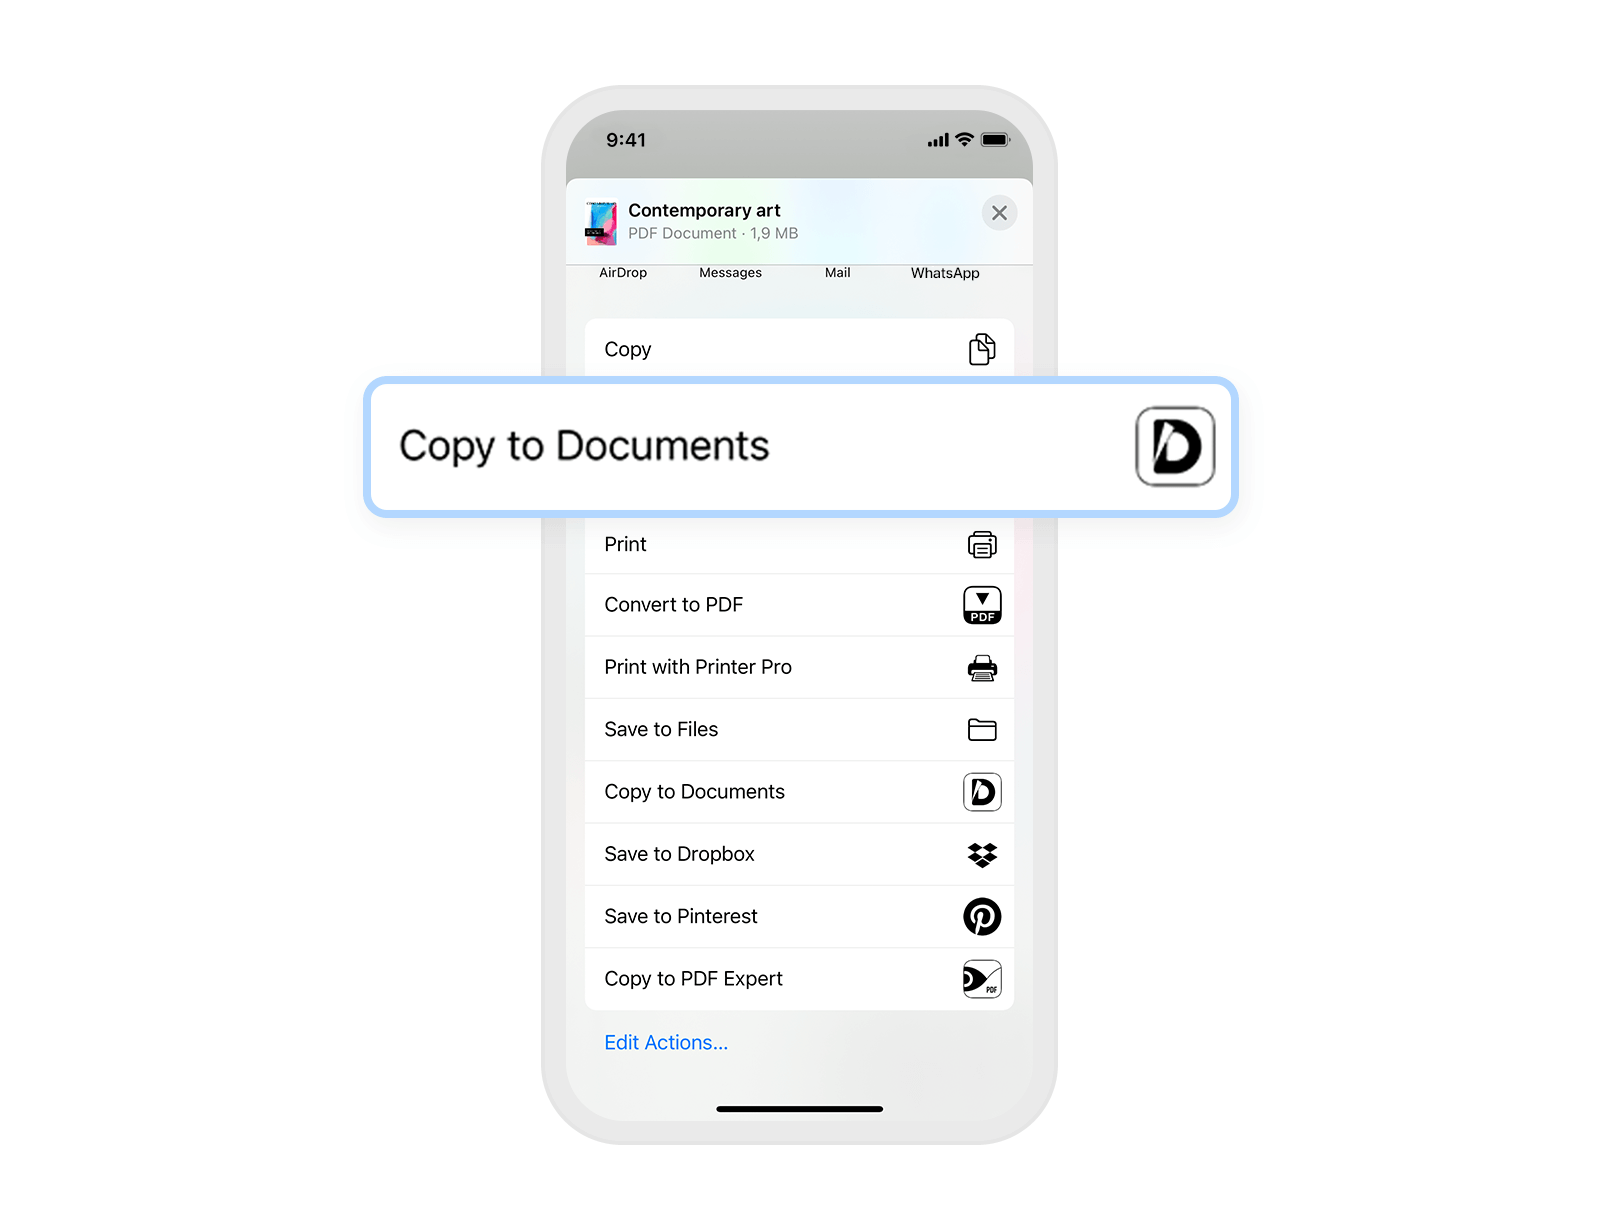 How to save email attachments on iPhone